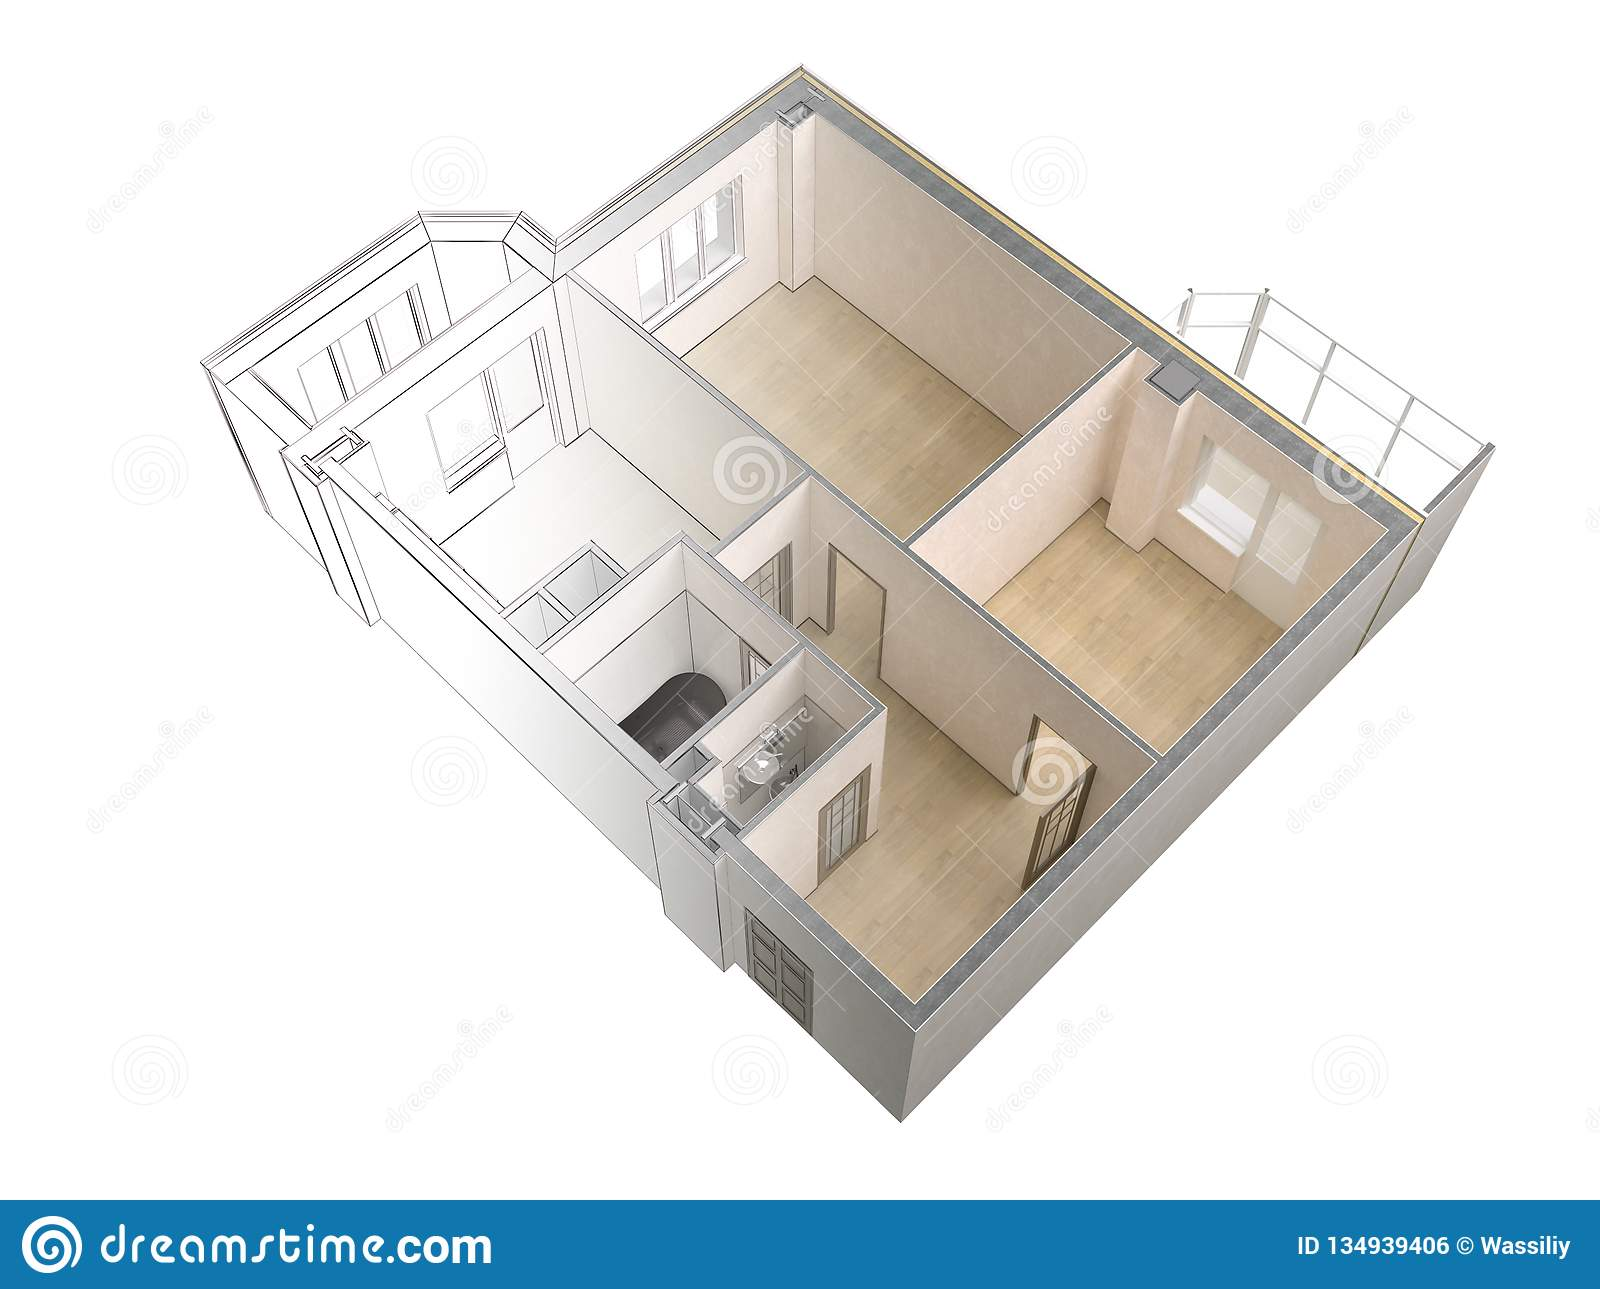 Draft Sketch Of A Modern Apartment Contrasting With A